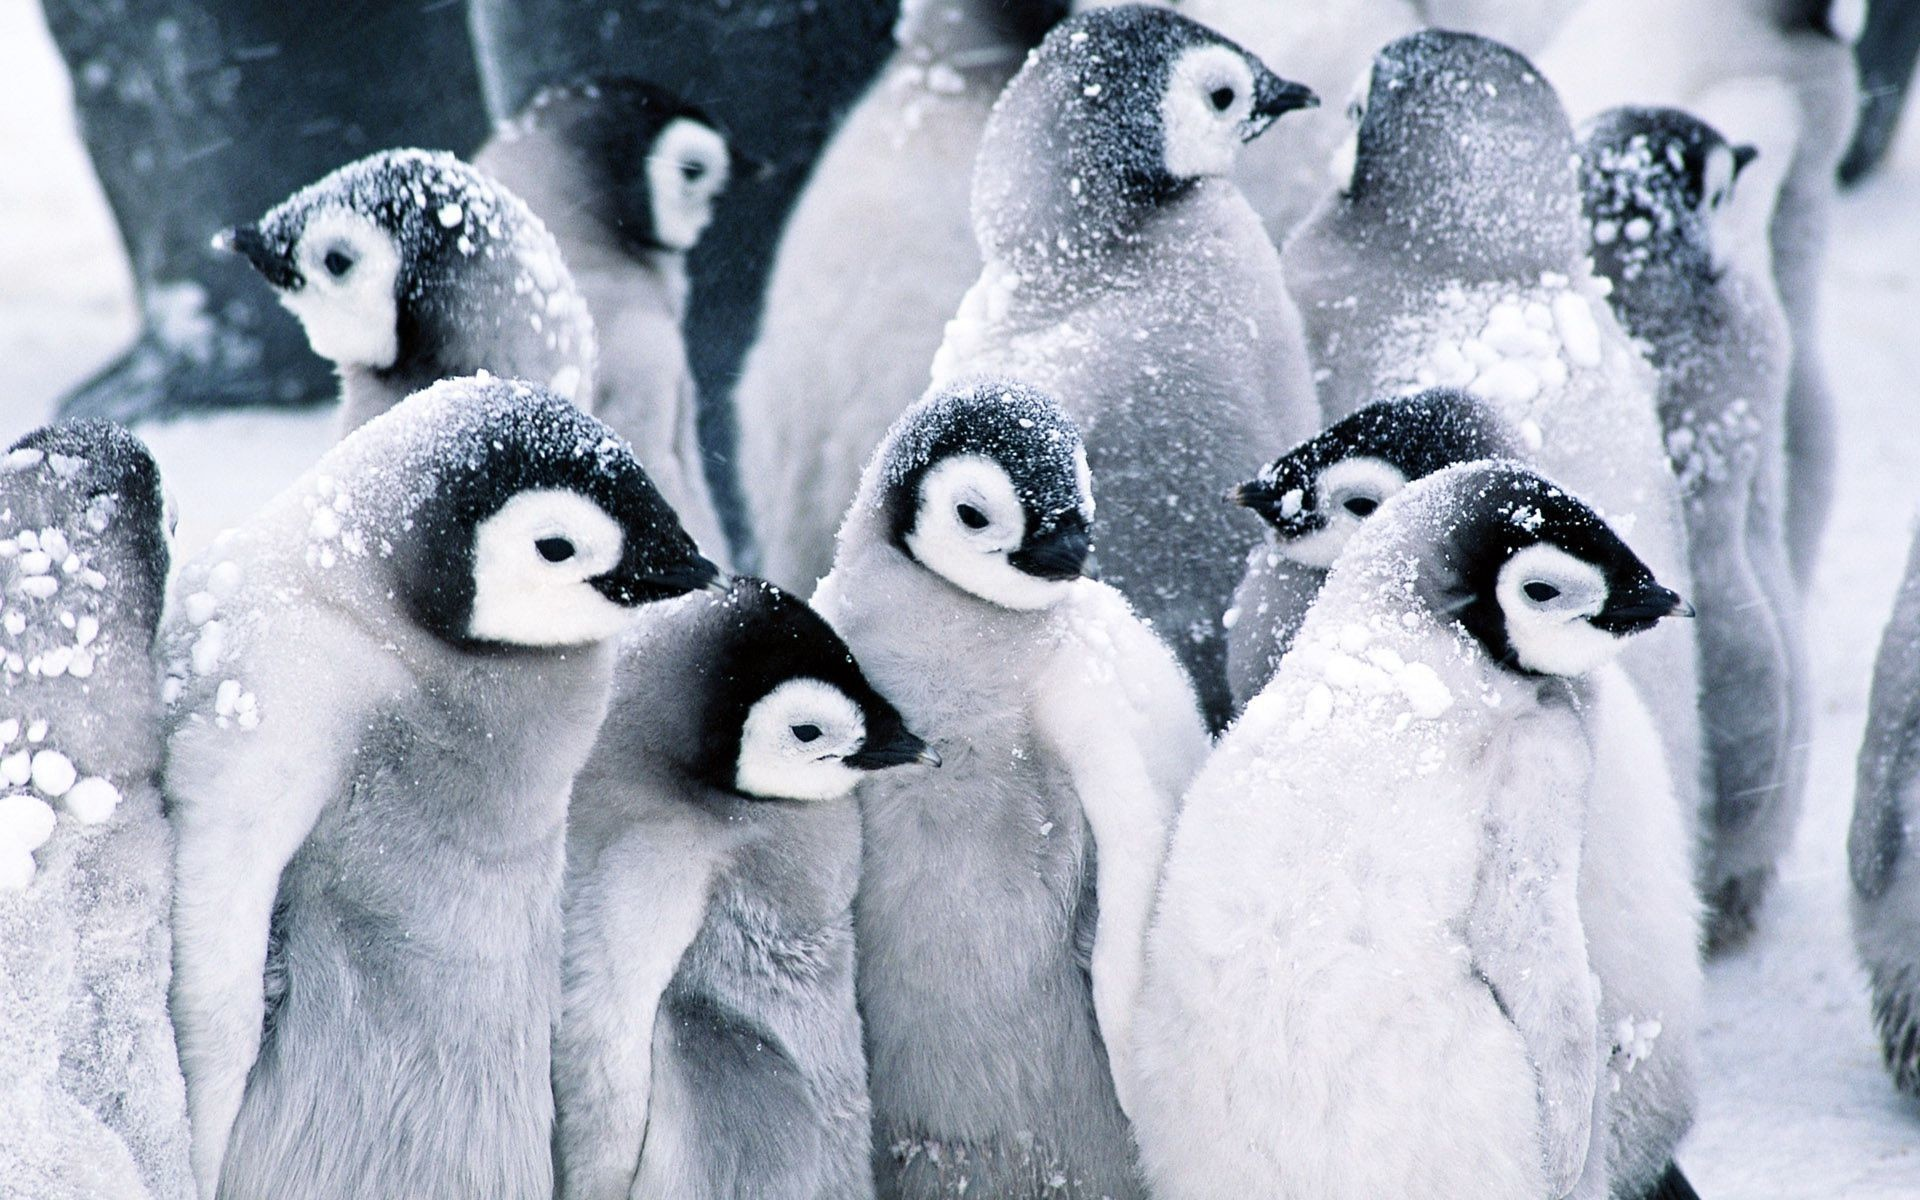 1920x1200 Colony of penguins in the snow wallpaper 15944